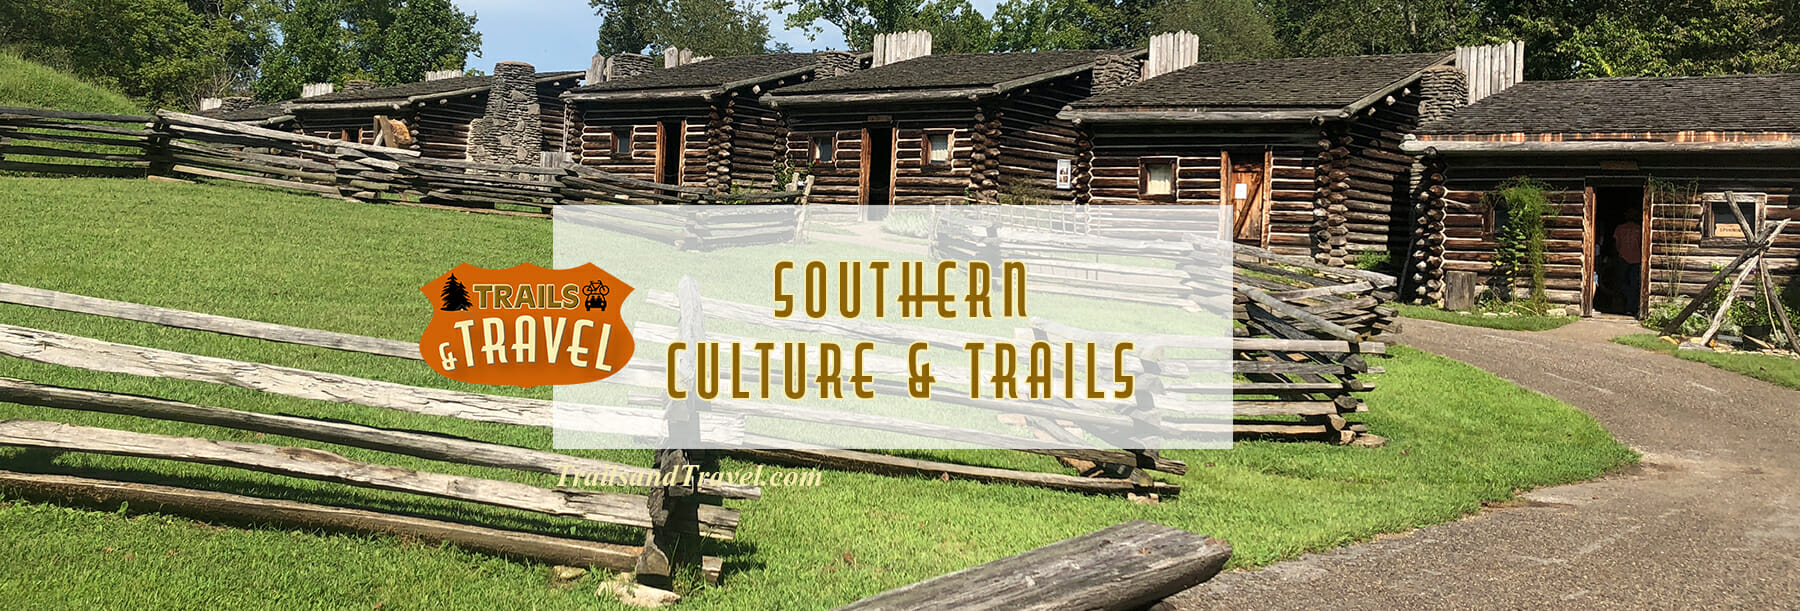 Southern Culture & Trails